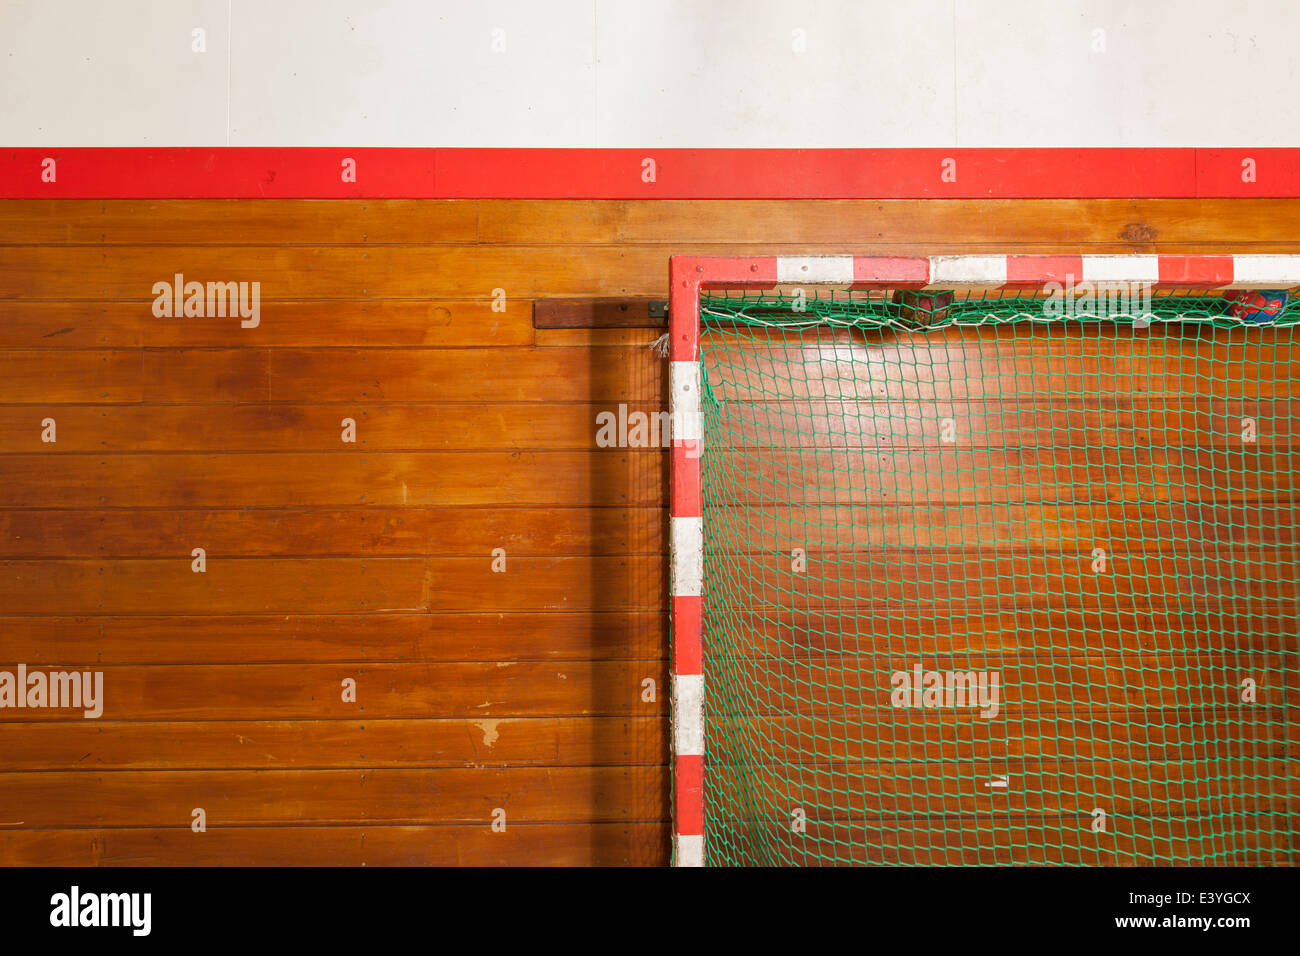 Vintage style goalpost in old gym - Stock Image